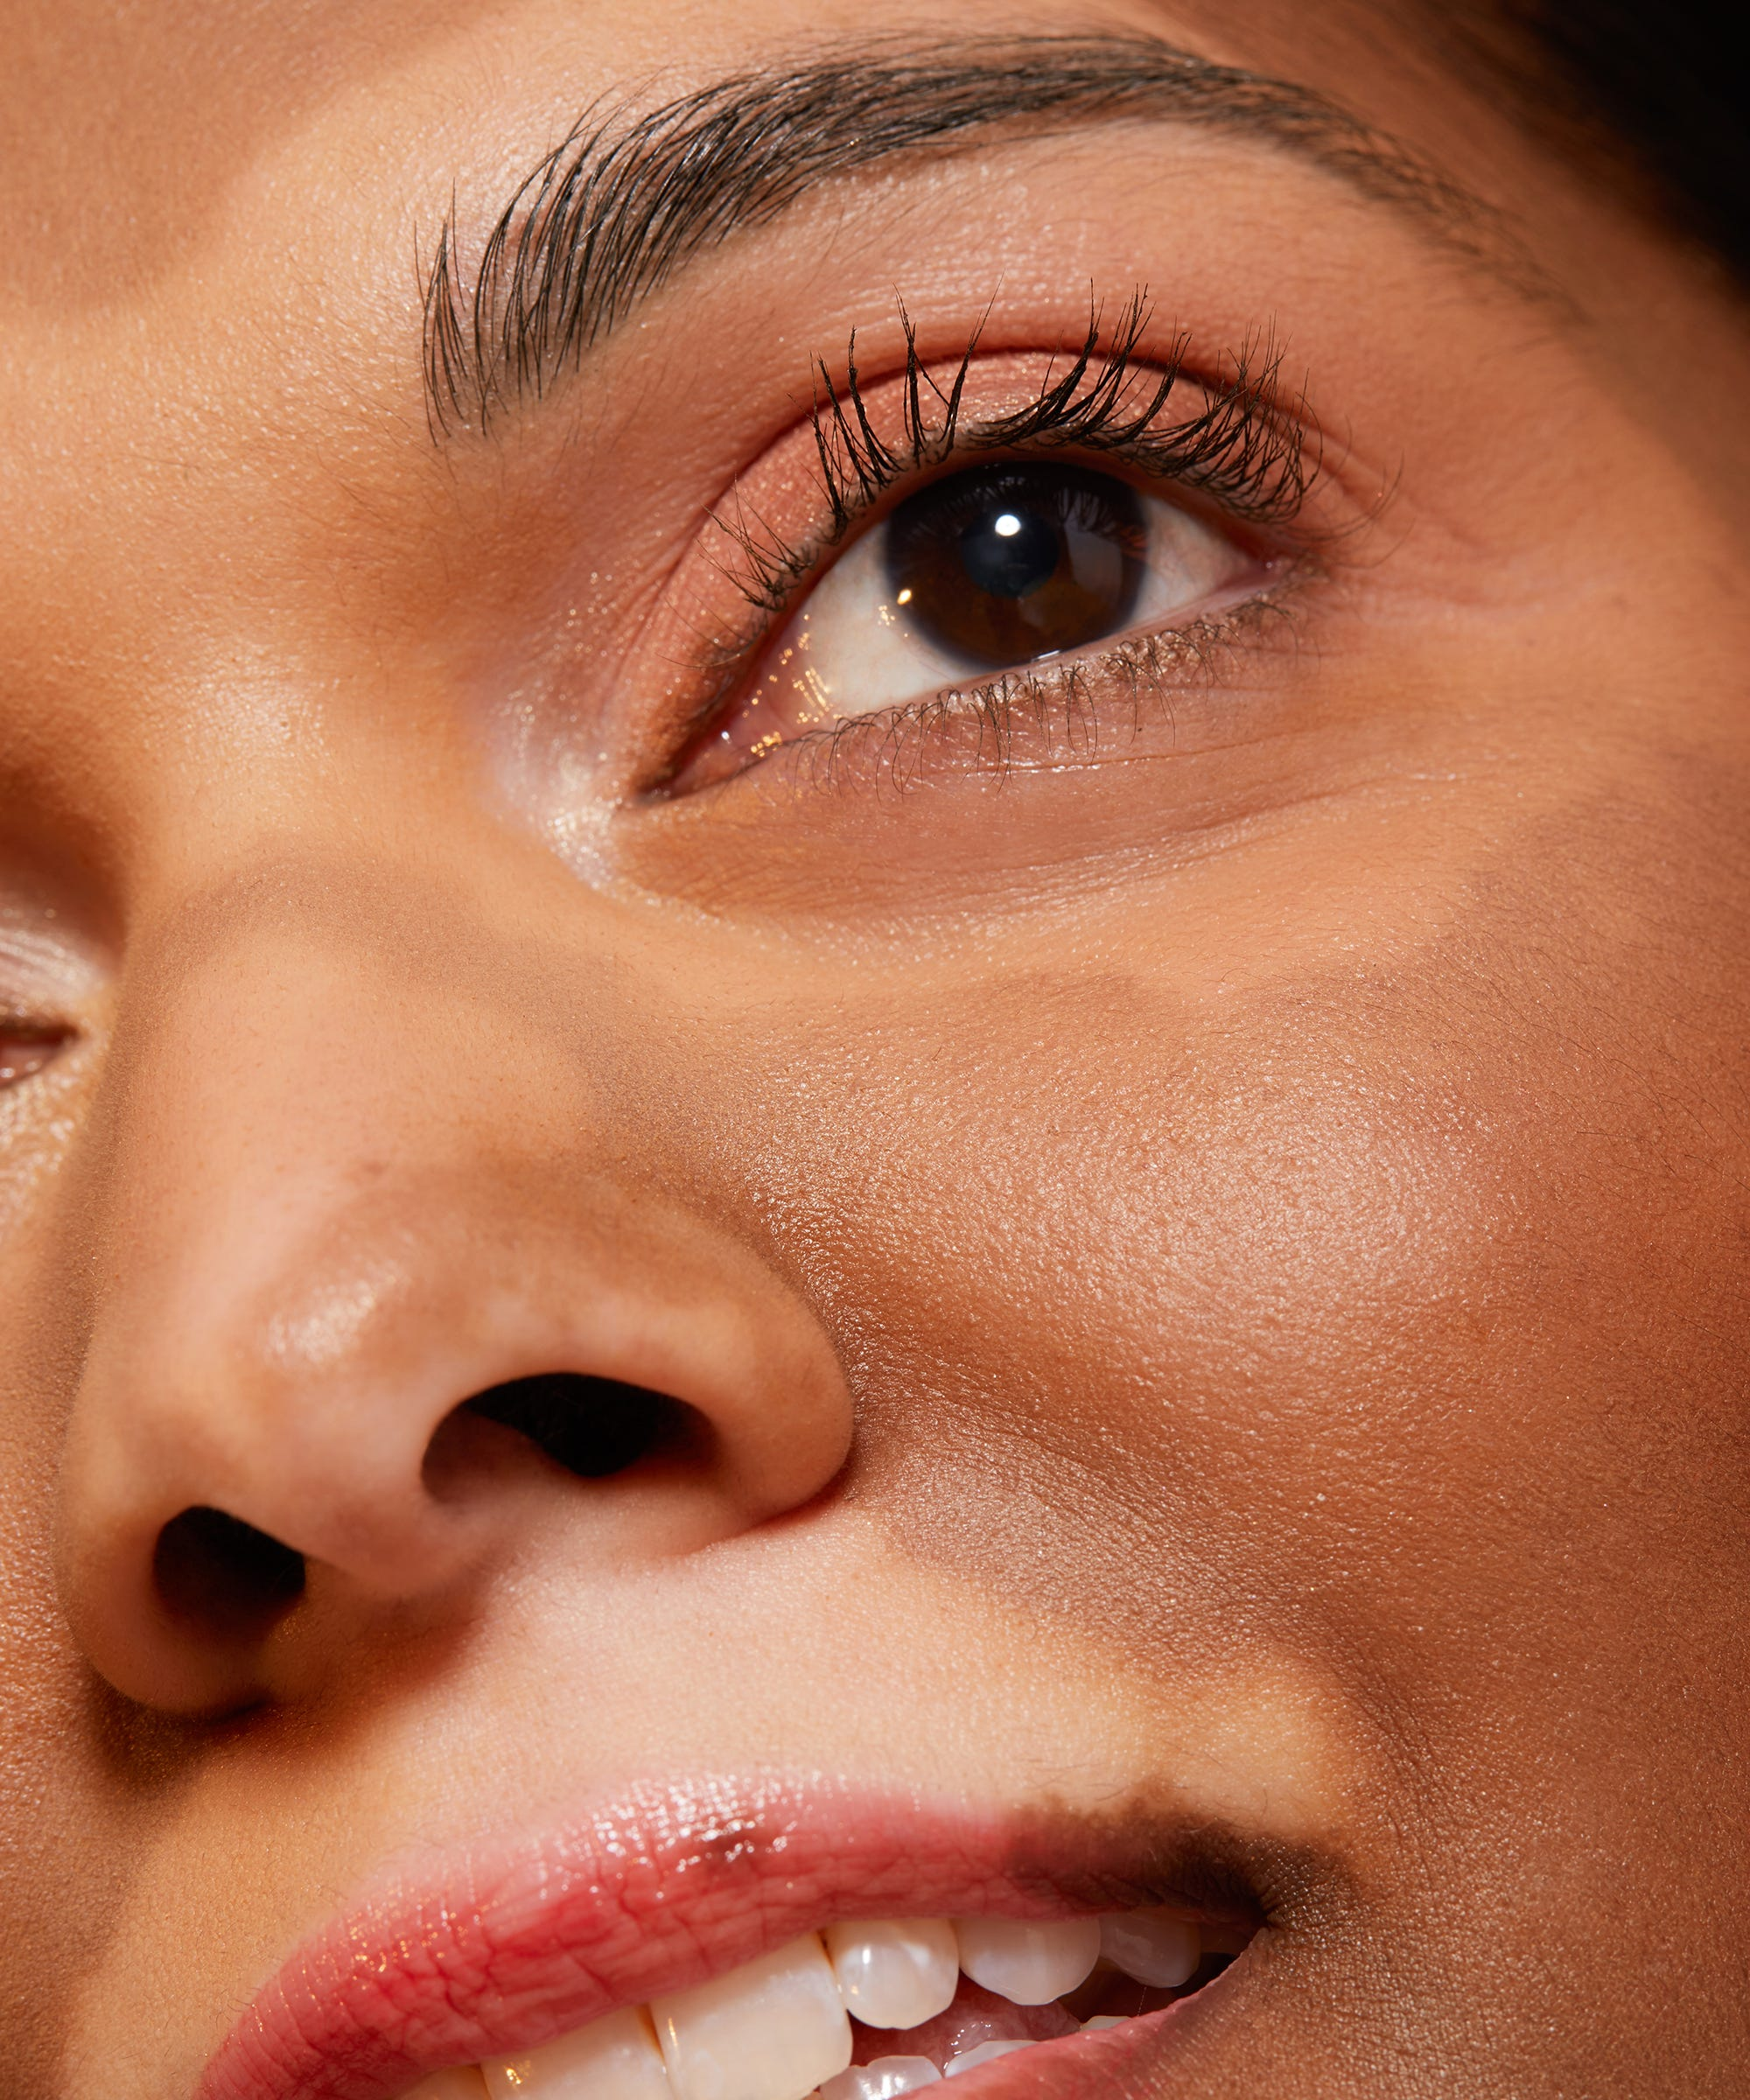 Castor Oil Eyebrows Before And After Men - Eyebrows Idea